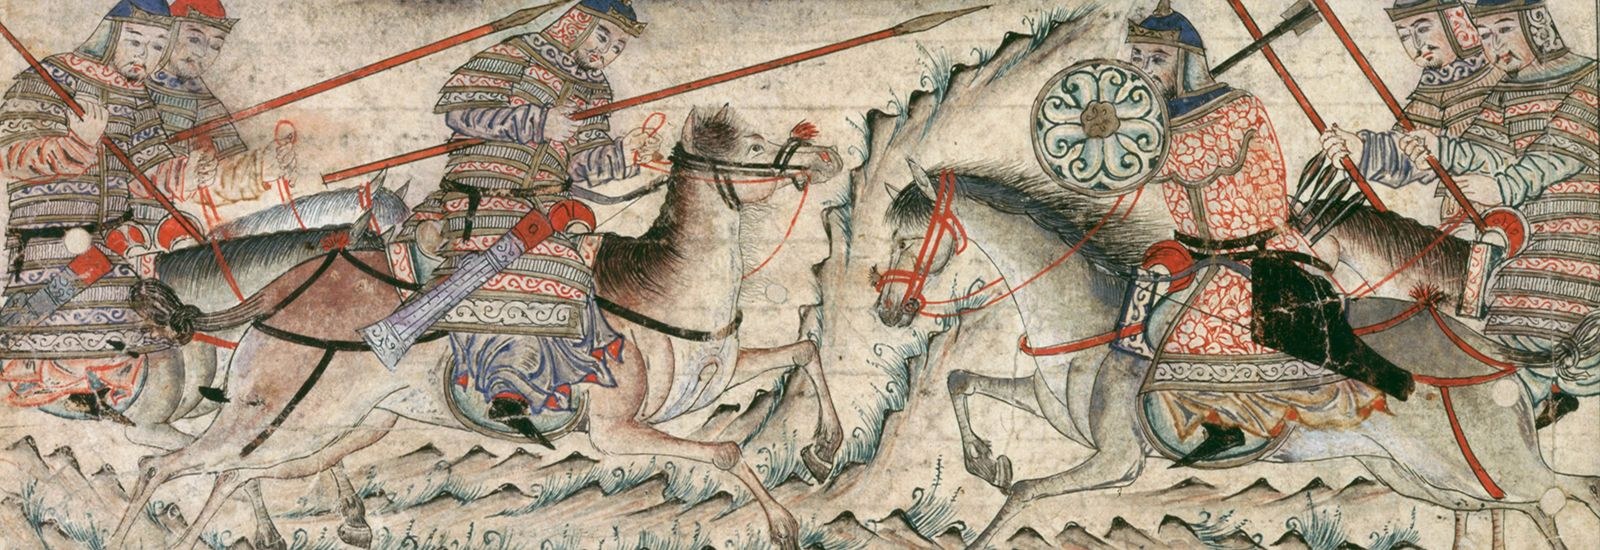 Close up of a drawing of soldiers on horseback